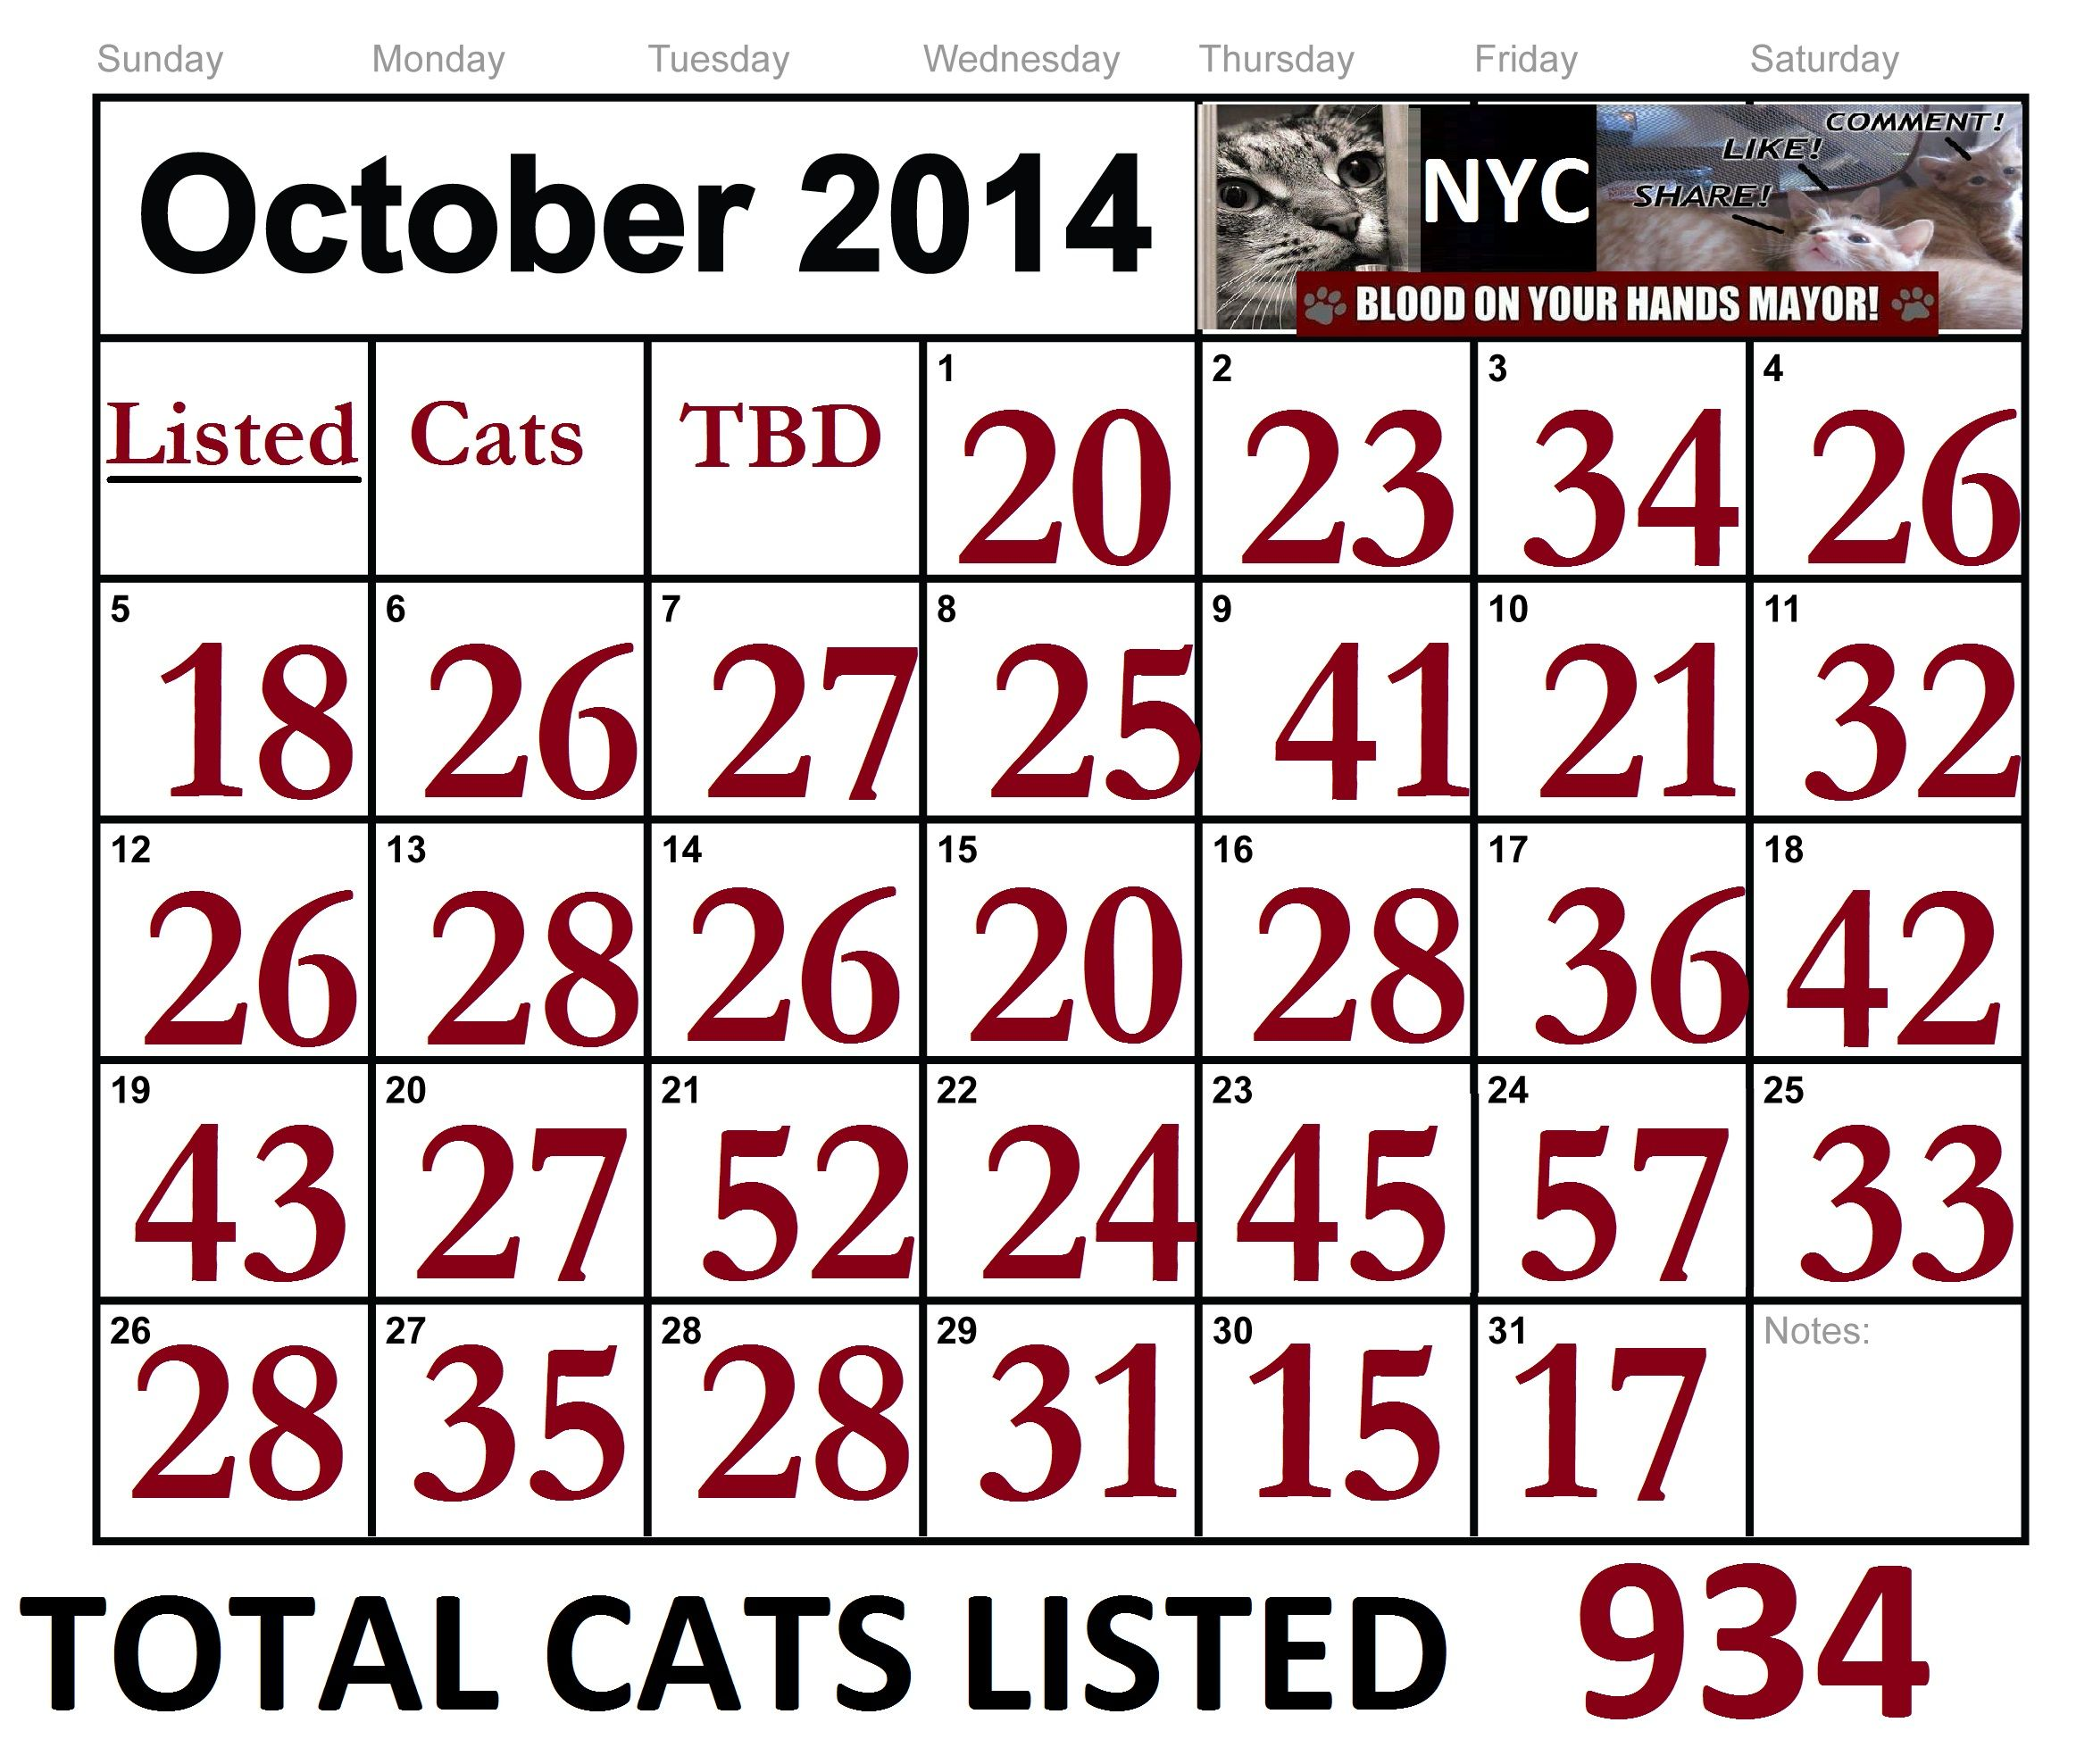 IN OCTOBER 2014 - NYC ACC LISTED A TOTAL OF 934 CATS/KITTENS TO BE DESTROYED!! Some made it out, BUT SADLY MANY DID NOT & WERE KILLED. https://www.facebook.com/nycurgentcats/photos_stream?tab=photos_albums